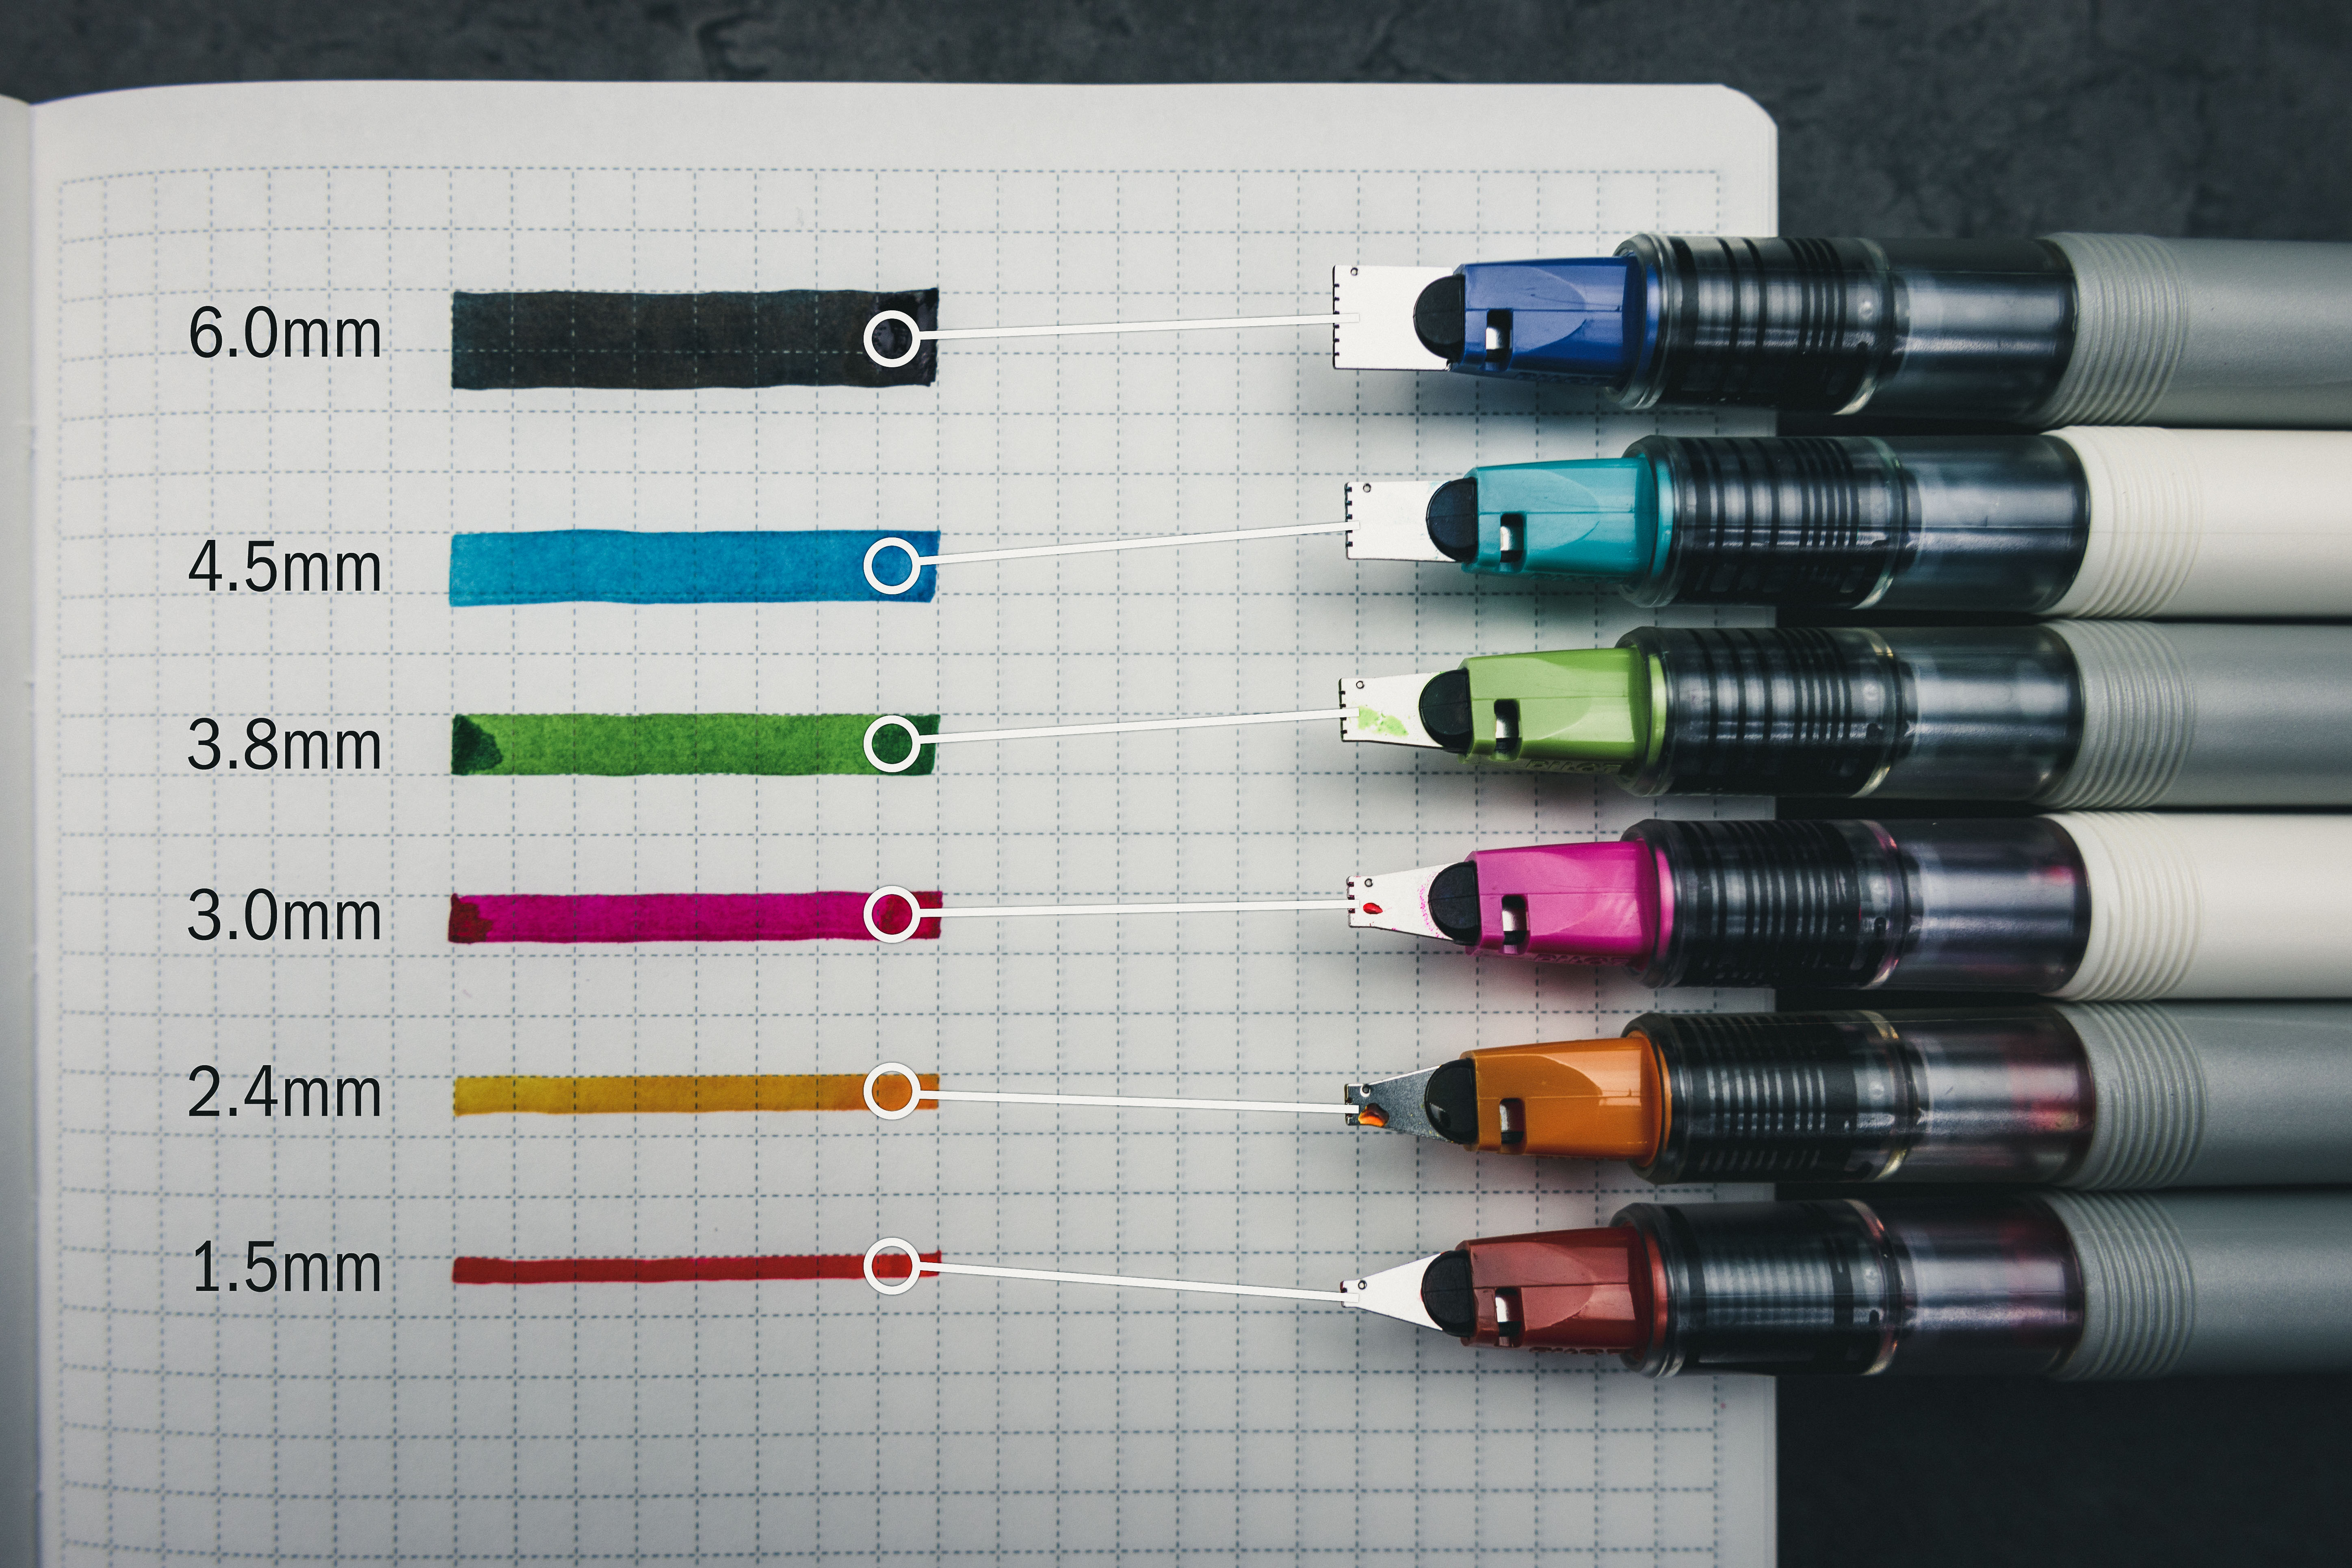 hand written comparison of 1.5mm (dark orange), 2.4mm (orange), 3.0mm (pink), 3.8mm (green), 4.5mm (turquoise), 6.0mm (blue) pilot parallel hand-written lines and pens on grid paper with labels